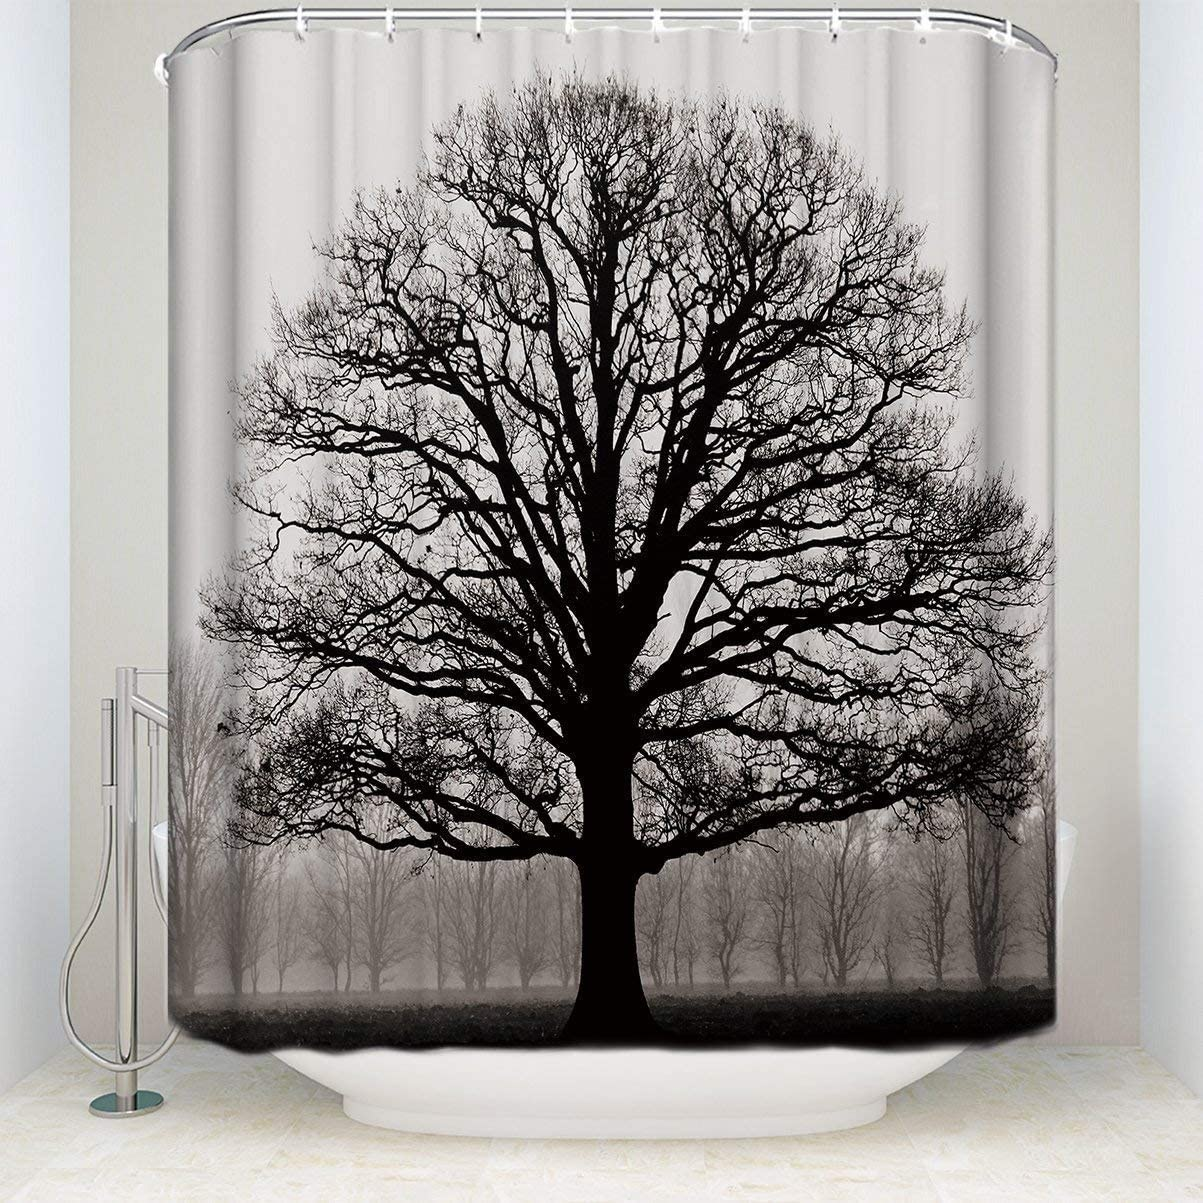 "Prime Leader Durable Shower Curtain-Tree Silhouette Waterproof Bathroom Fabric Shower Curtains,36""(w) x 72""(h) Bathroom Decor with Hooks"